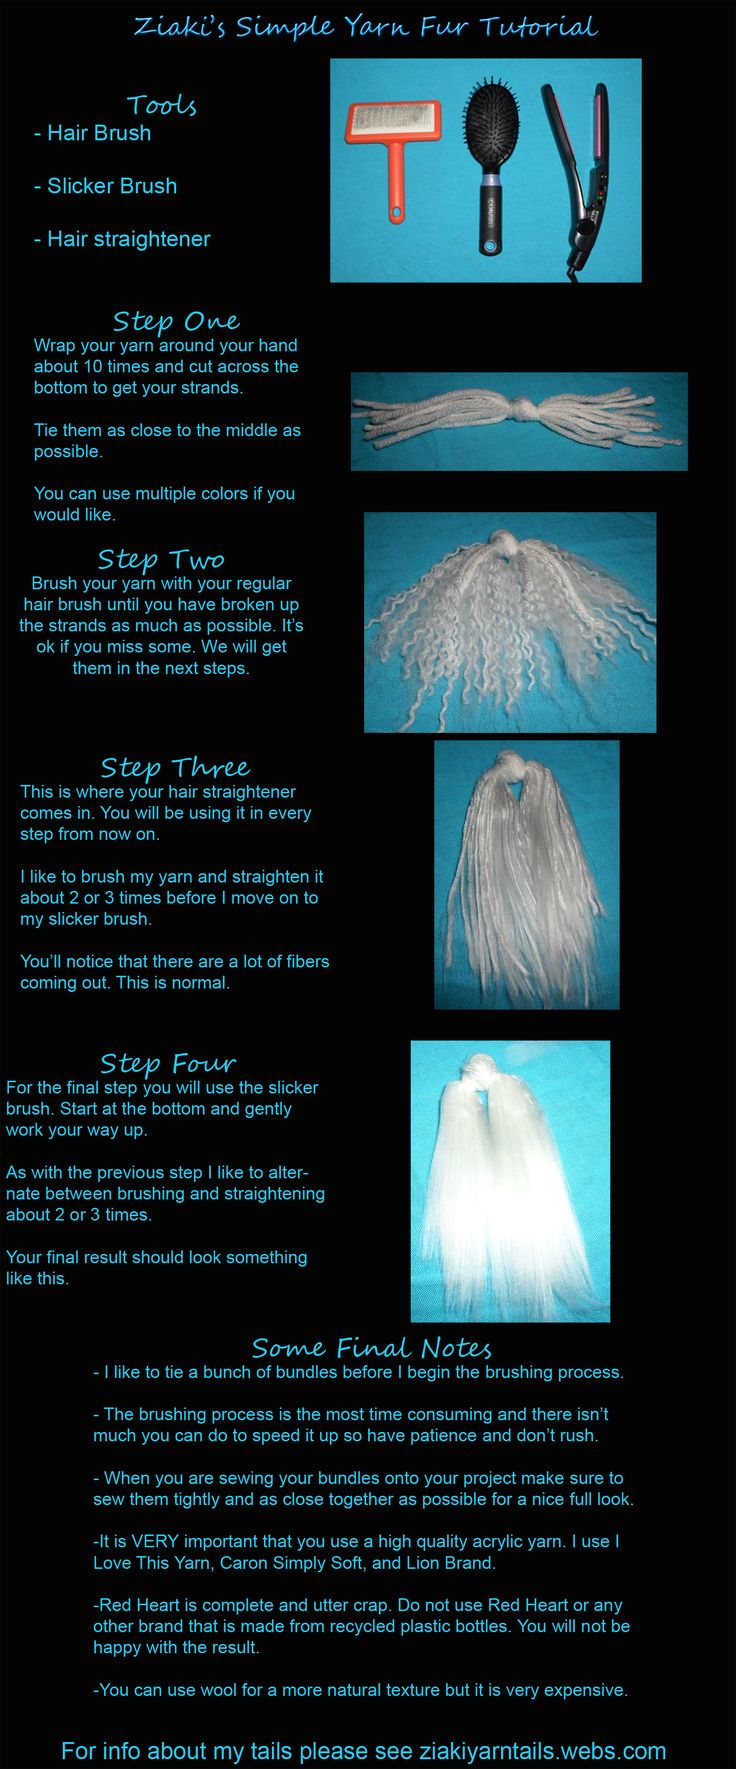 Yarn Fur Tutorial by serenitymoonwolf.deviantart.com on @deviantART. Some extra tips and hints for a nice looking tail. I only pinned this, I did not make the tutorial and I myself have used and had varying degree's of success with RedHeart yarn. In my personal opinion it just depends on the look you are trying to achieve.